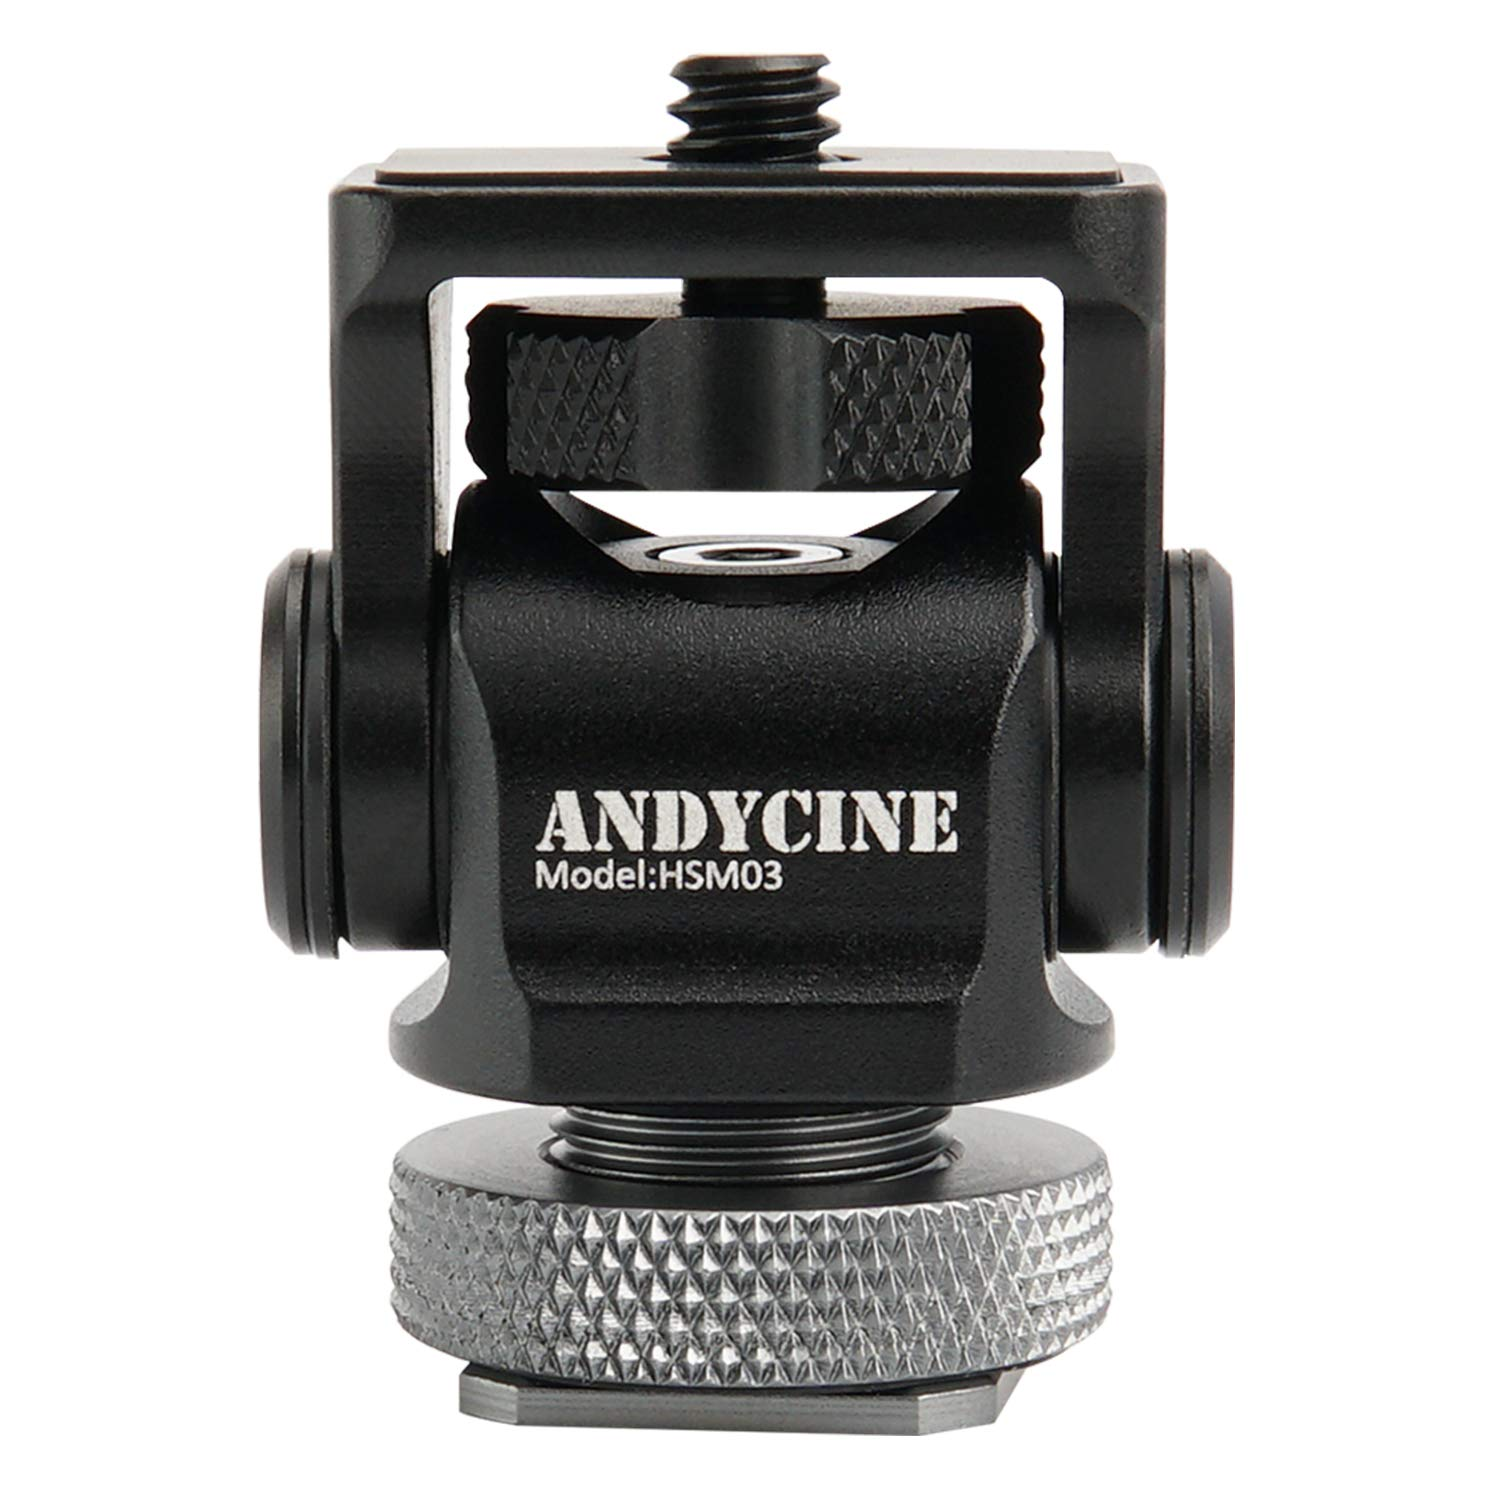 ANDYCINE Mini Hot Shoe Stand Monitor Mount Vlogger Original Mount 176 Degree Upper Rotation 360 Degree Base Rotations with Screw Fixture Camera EDC Tools Box(Version 1.2) by ANDYCINE